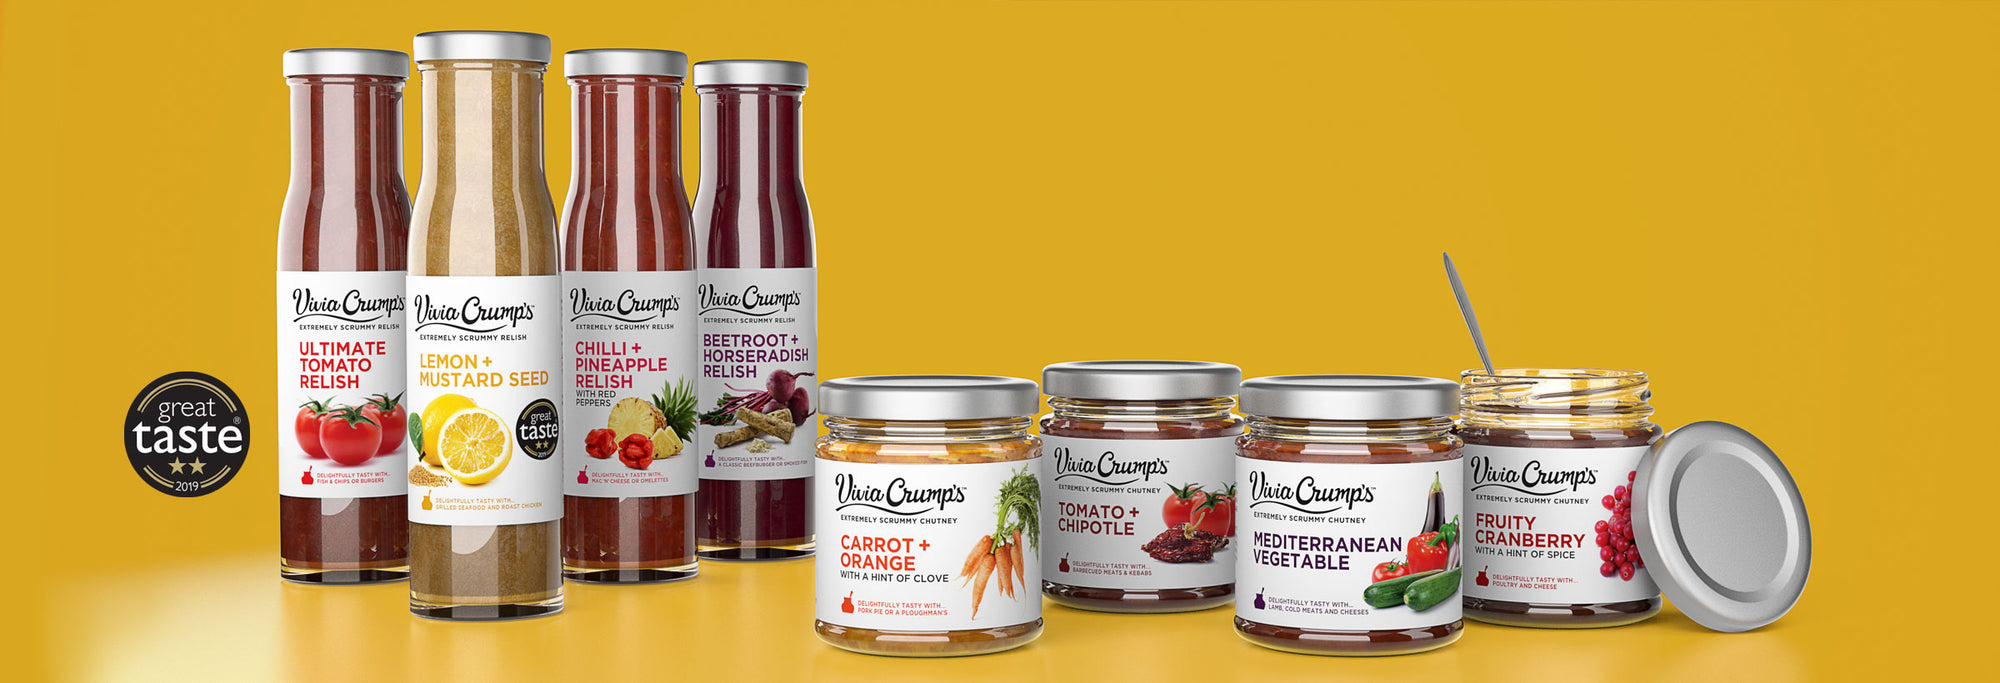 Award winning relishes and chutneys by Vivia Crumps